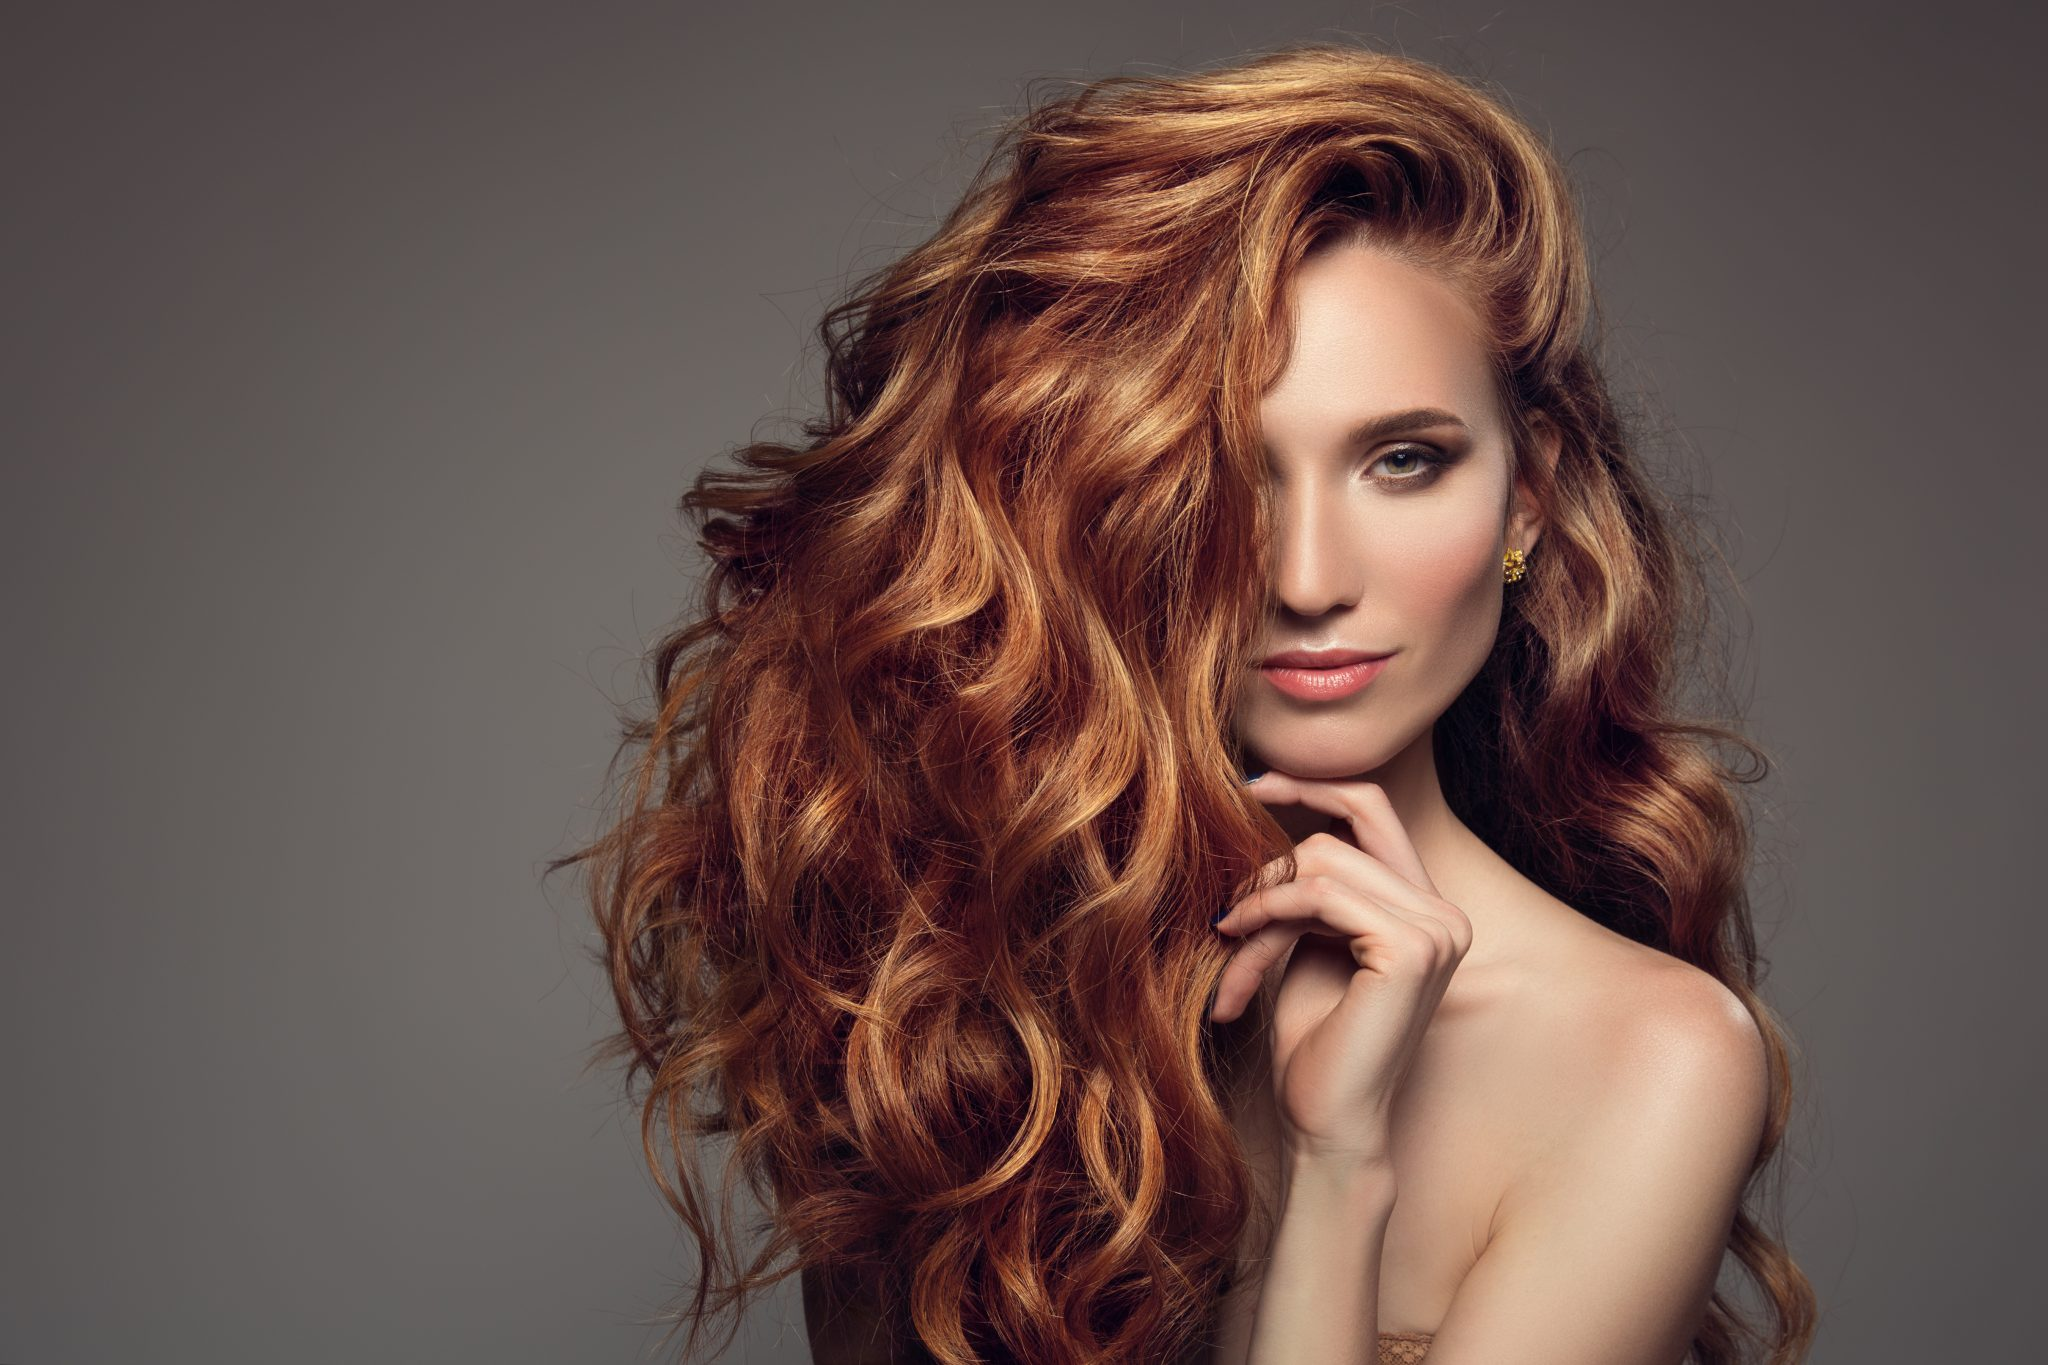 Portrait of woman with long curly beautiful ginger hair.